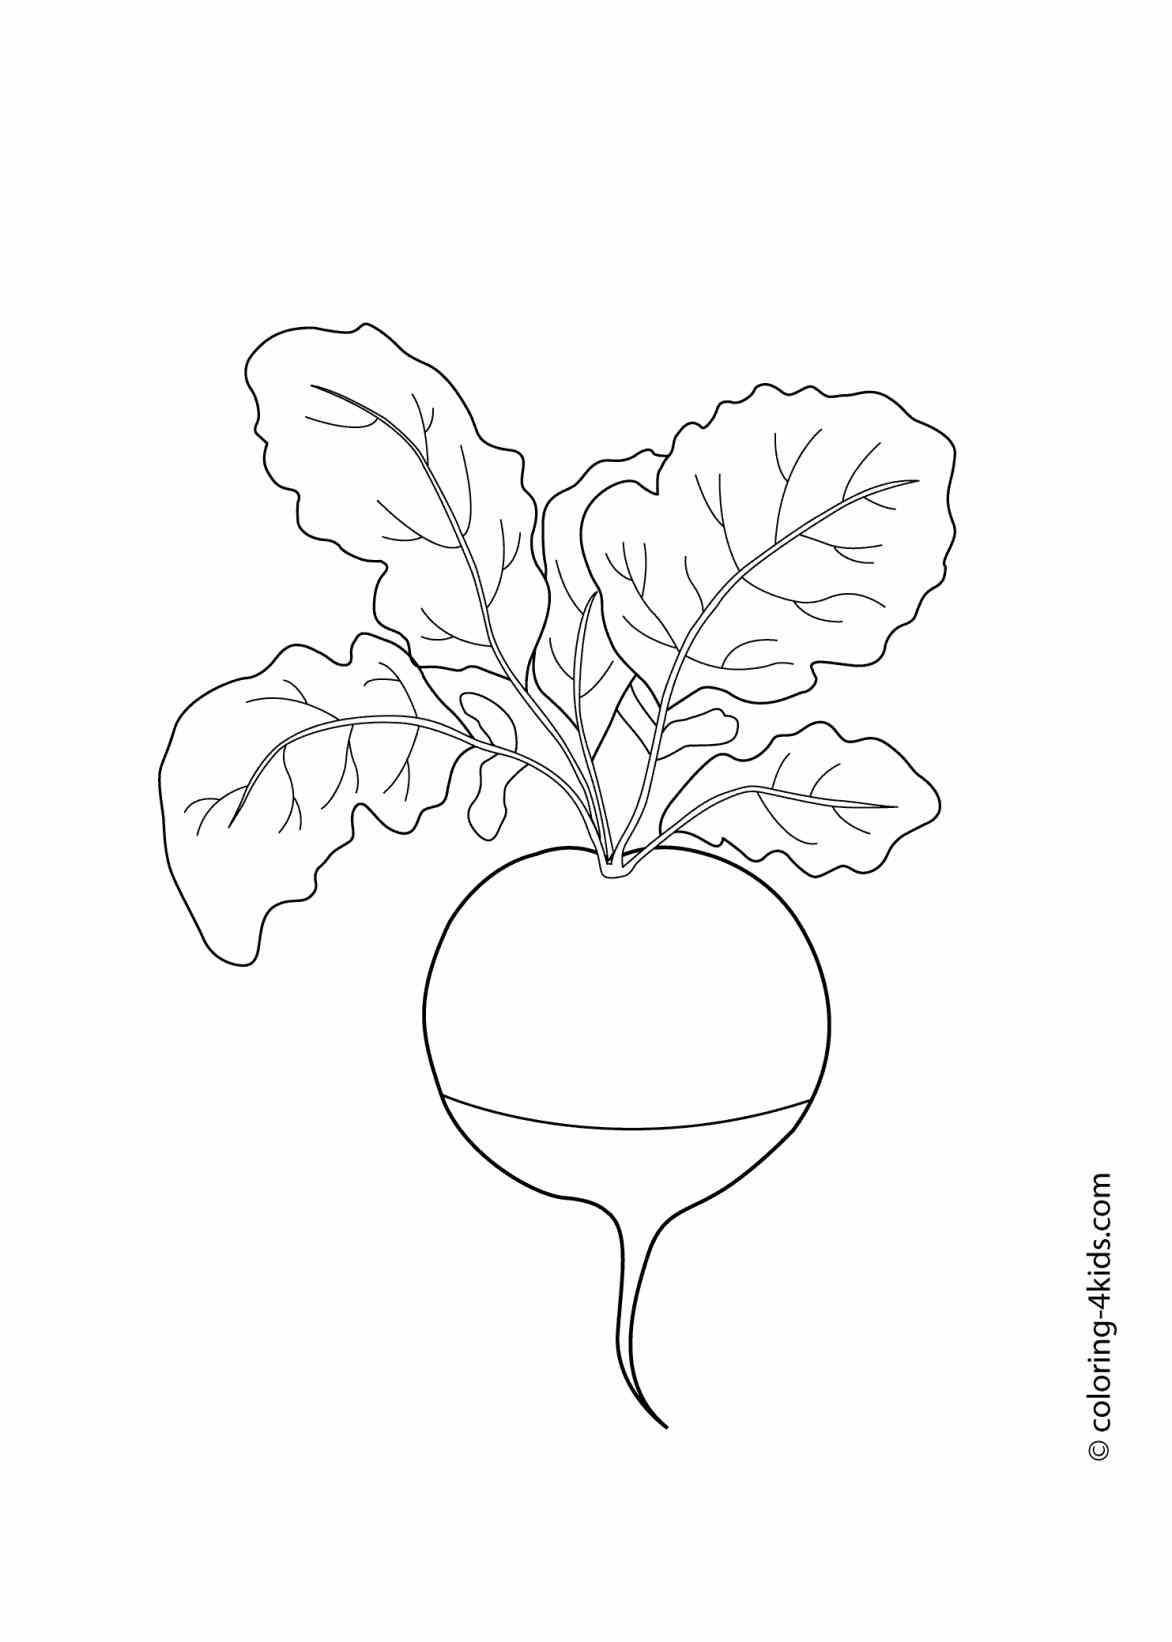 Sweet Potato Drawing At Getdrawings Com Free For Personal Use